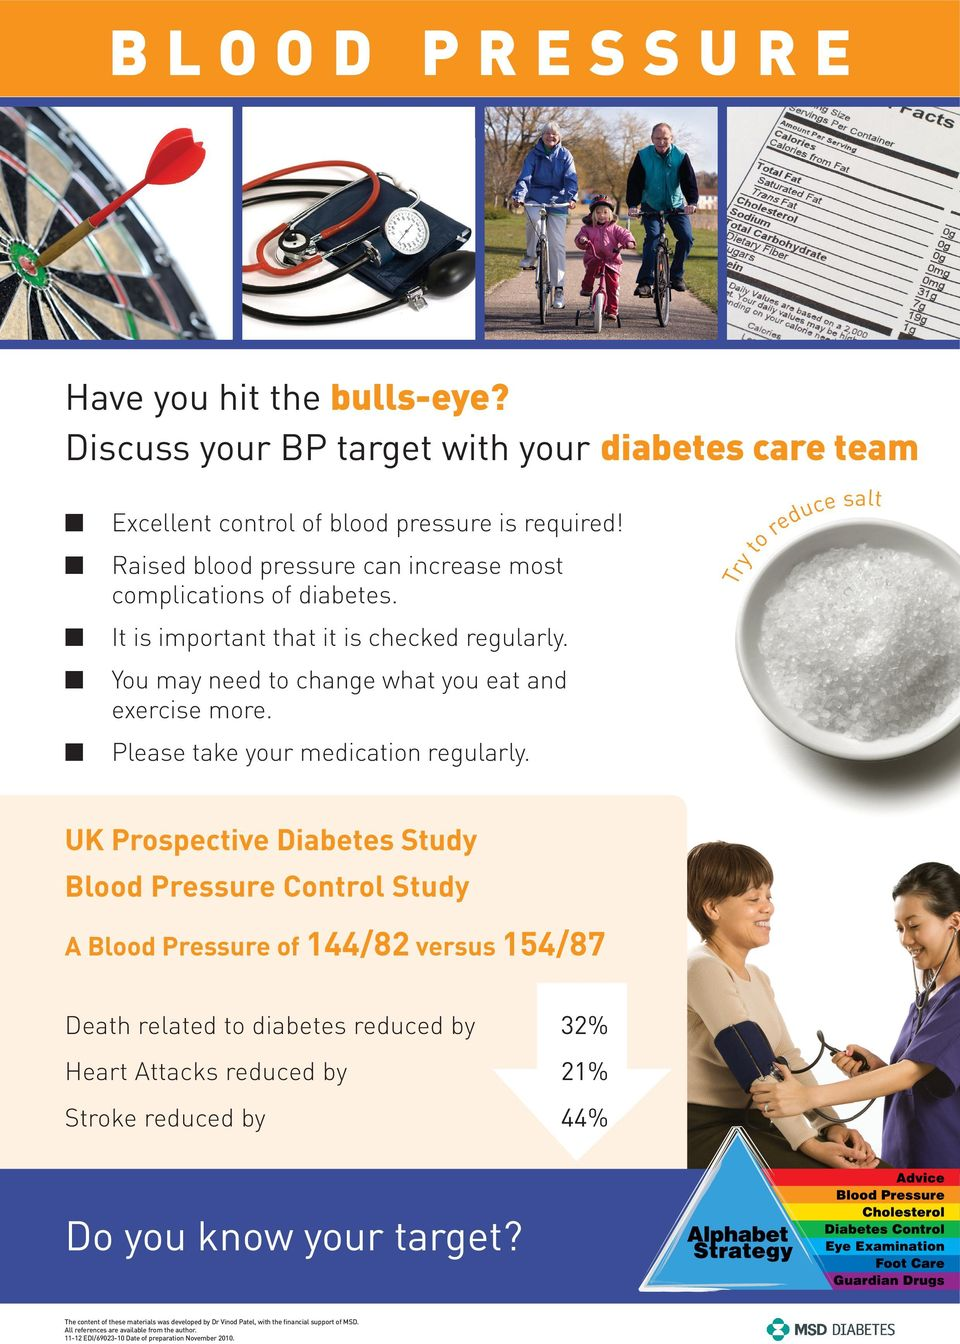 UK Prospective Diabetes Study Blood Pressure Control Study A Blood Pressure of 144/82 versus 154/87 Death related to diabetes reduced by 32% Heart